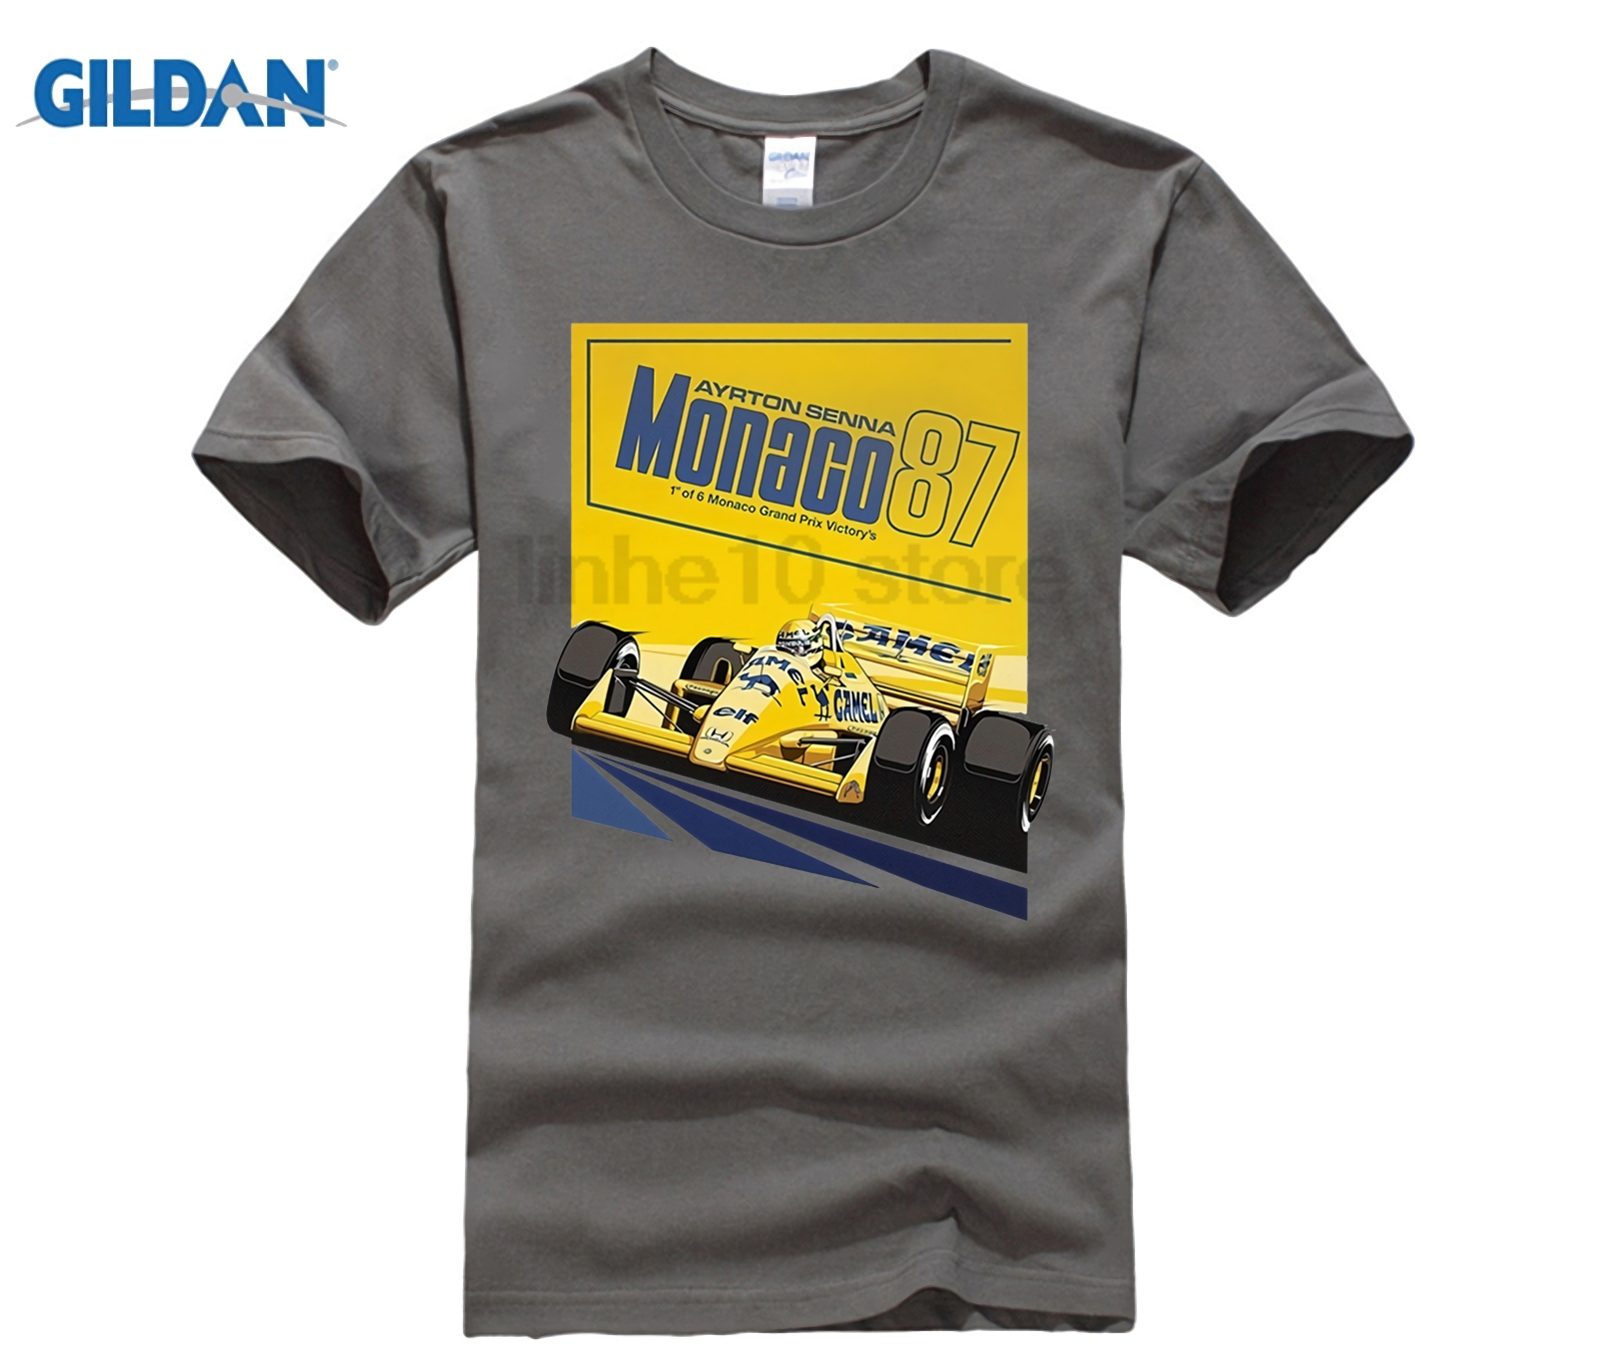 GILDAN New Arrival Ayrton Senna 87 Poster Tops T Shirt 1 Car Men Round Collar Short Sleeve T-Shirts